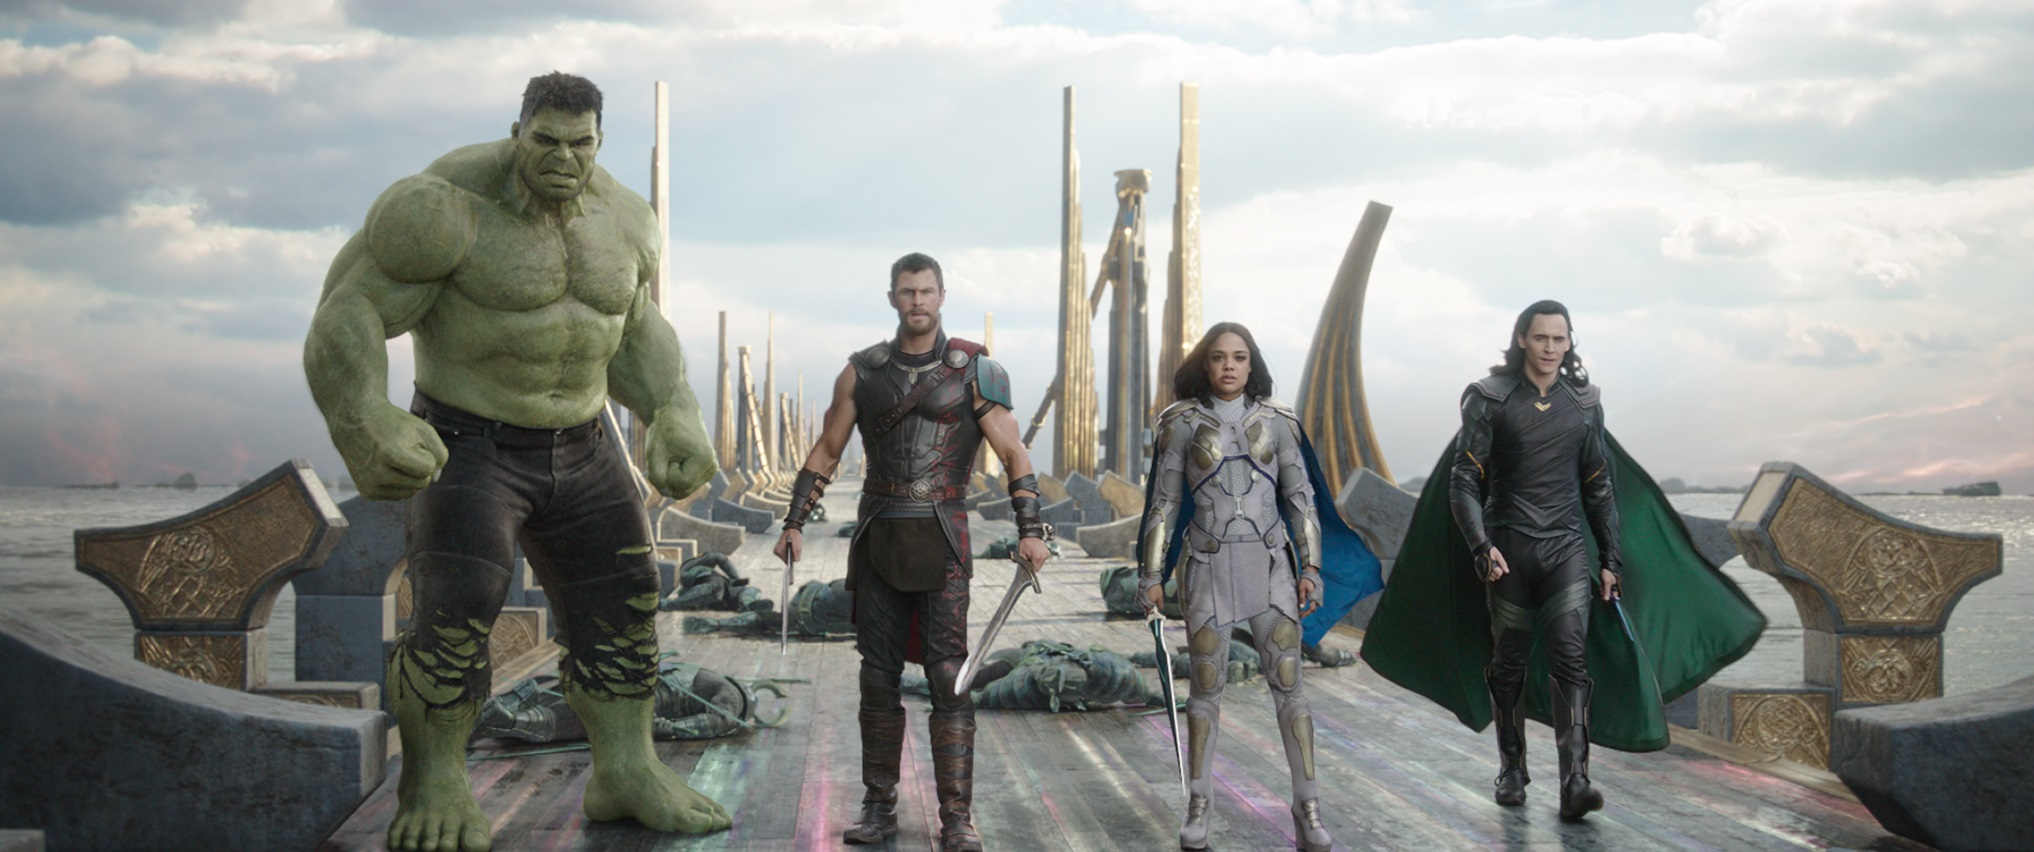 Thor Ragnarok 2017 Whats After The Credits The Definitive After Credits Film Catalog Service